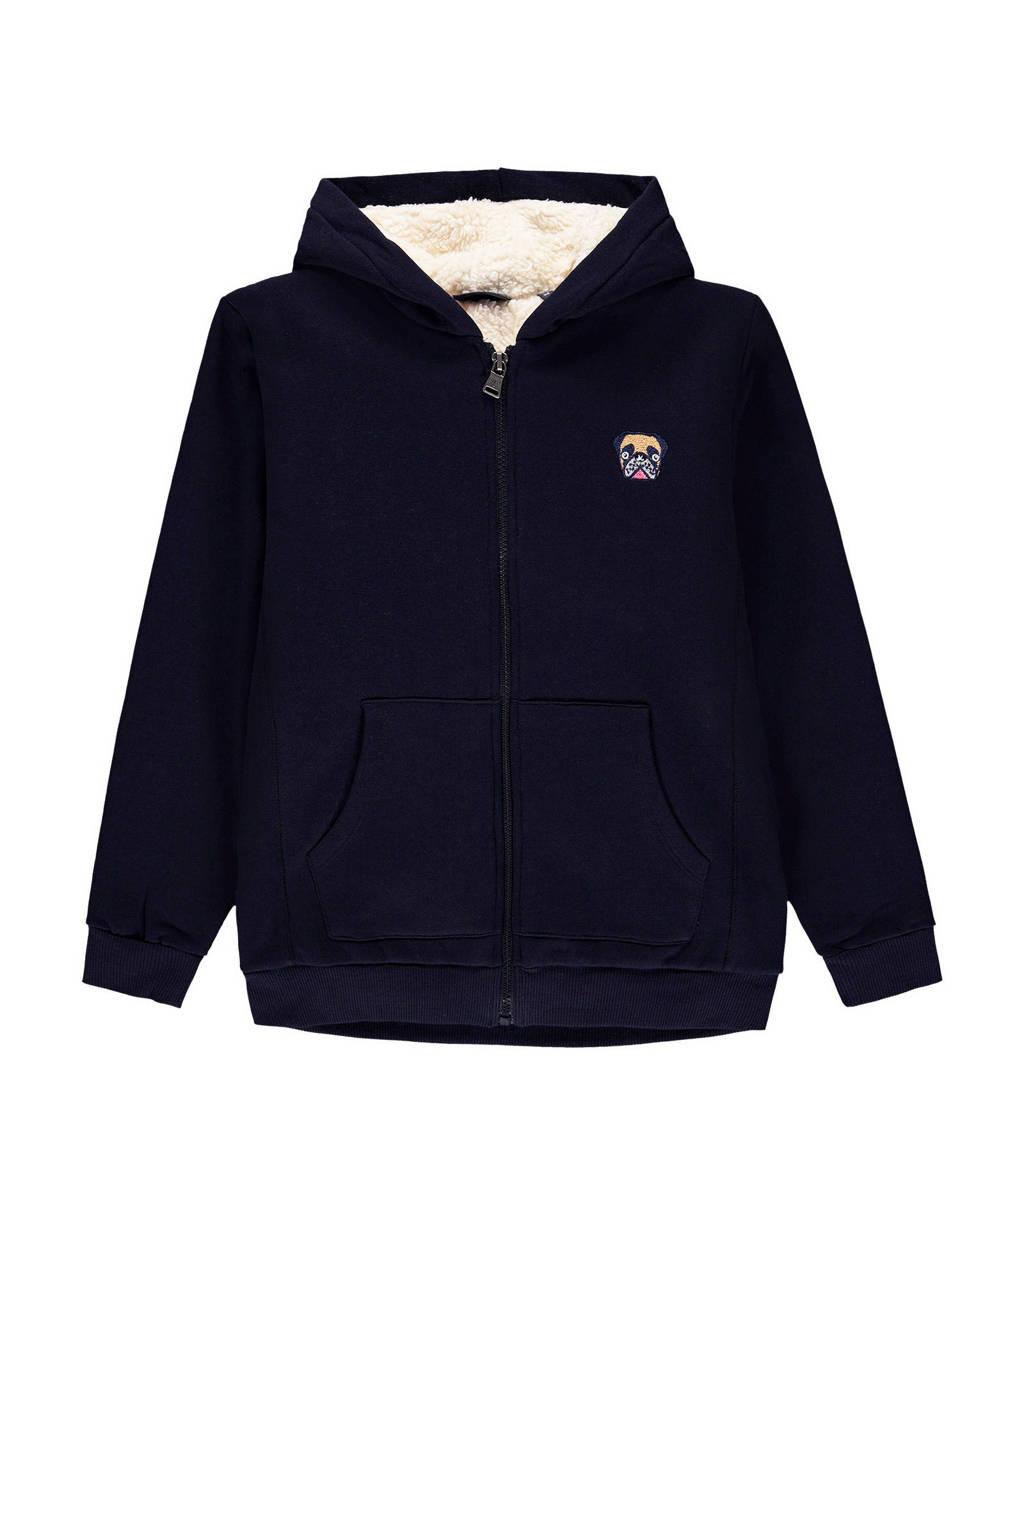 Marc O'Polo vest met borduursels donkerblauw, Donkerblauw